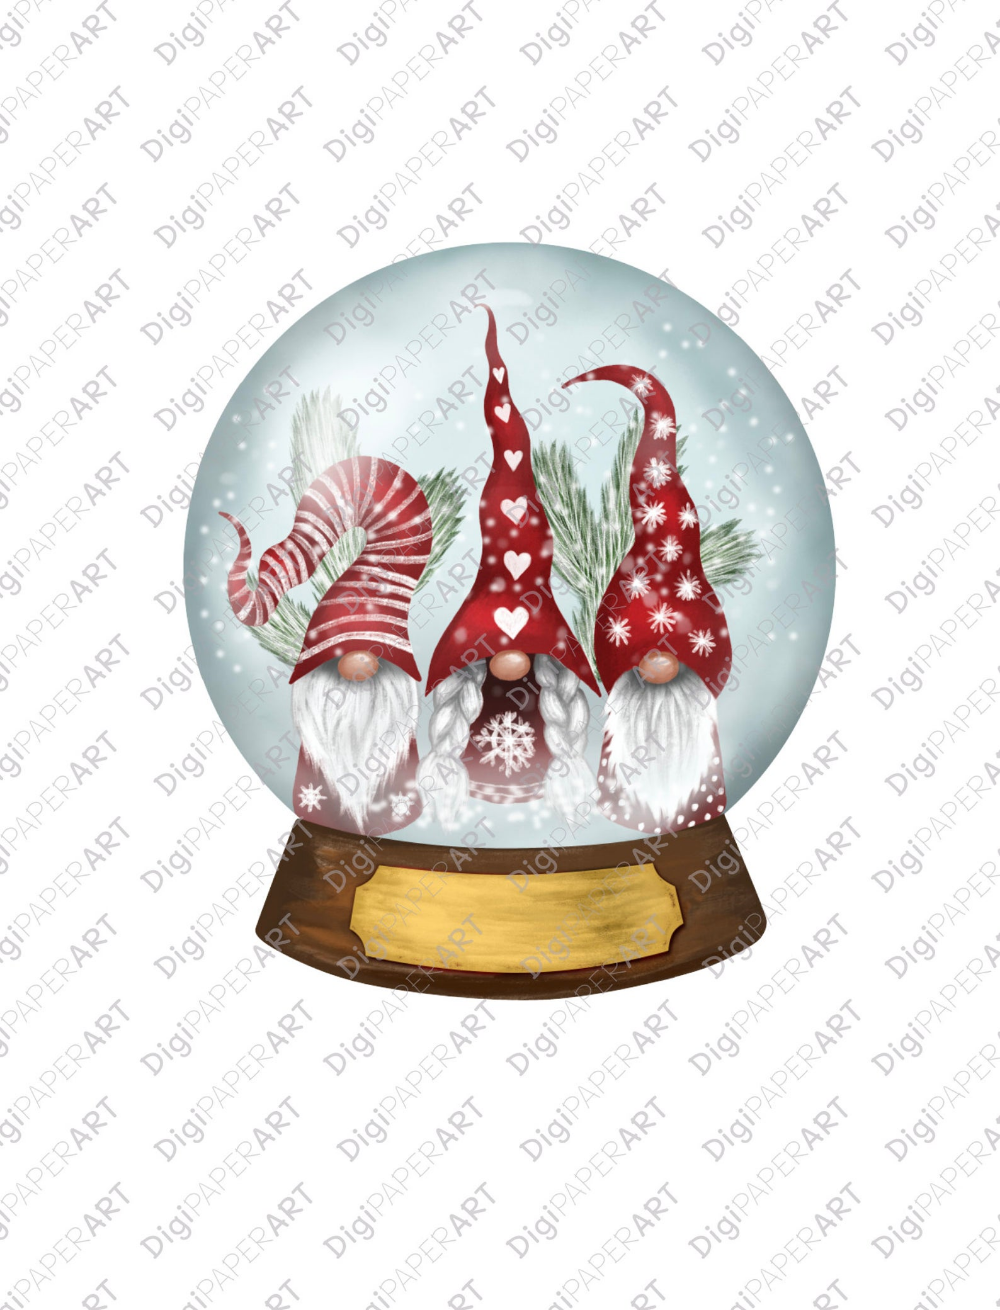 Gnome Snow Globe Png Clipart Watercolor Gnome Png Clipart Etsy Snow Globes Christmas Paintings Globe Ornament